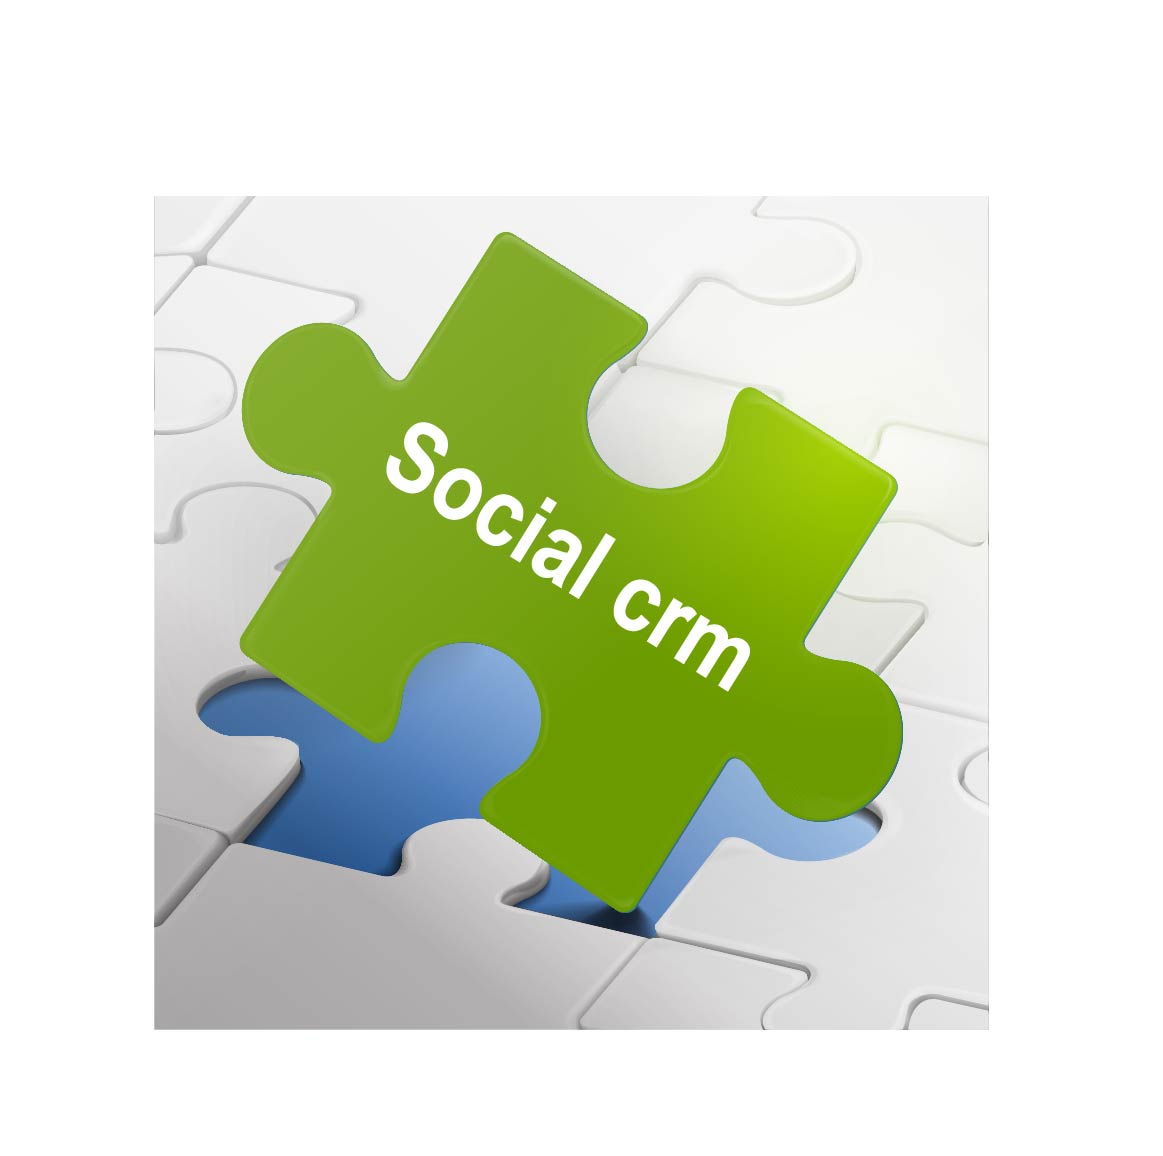 Social-CRM-is-for-everyone-1 Is Social CRM the turning Point in Social Media Marketing We Have All Been Waiting for?